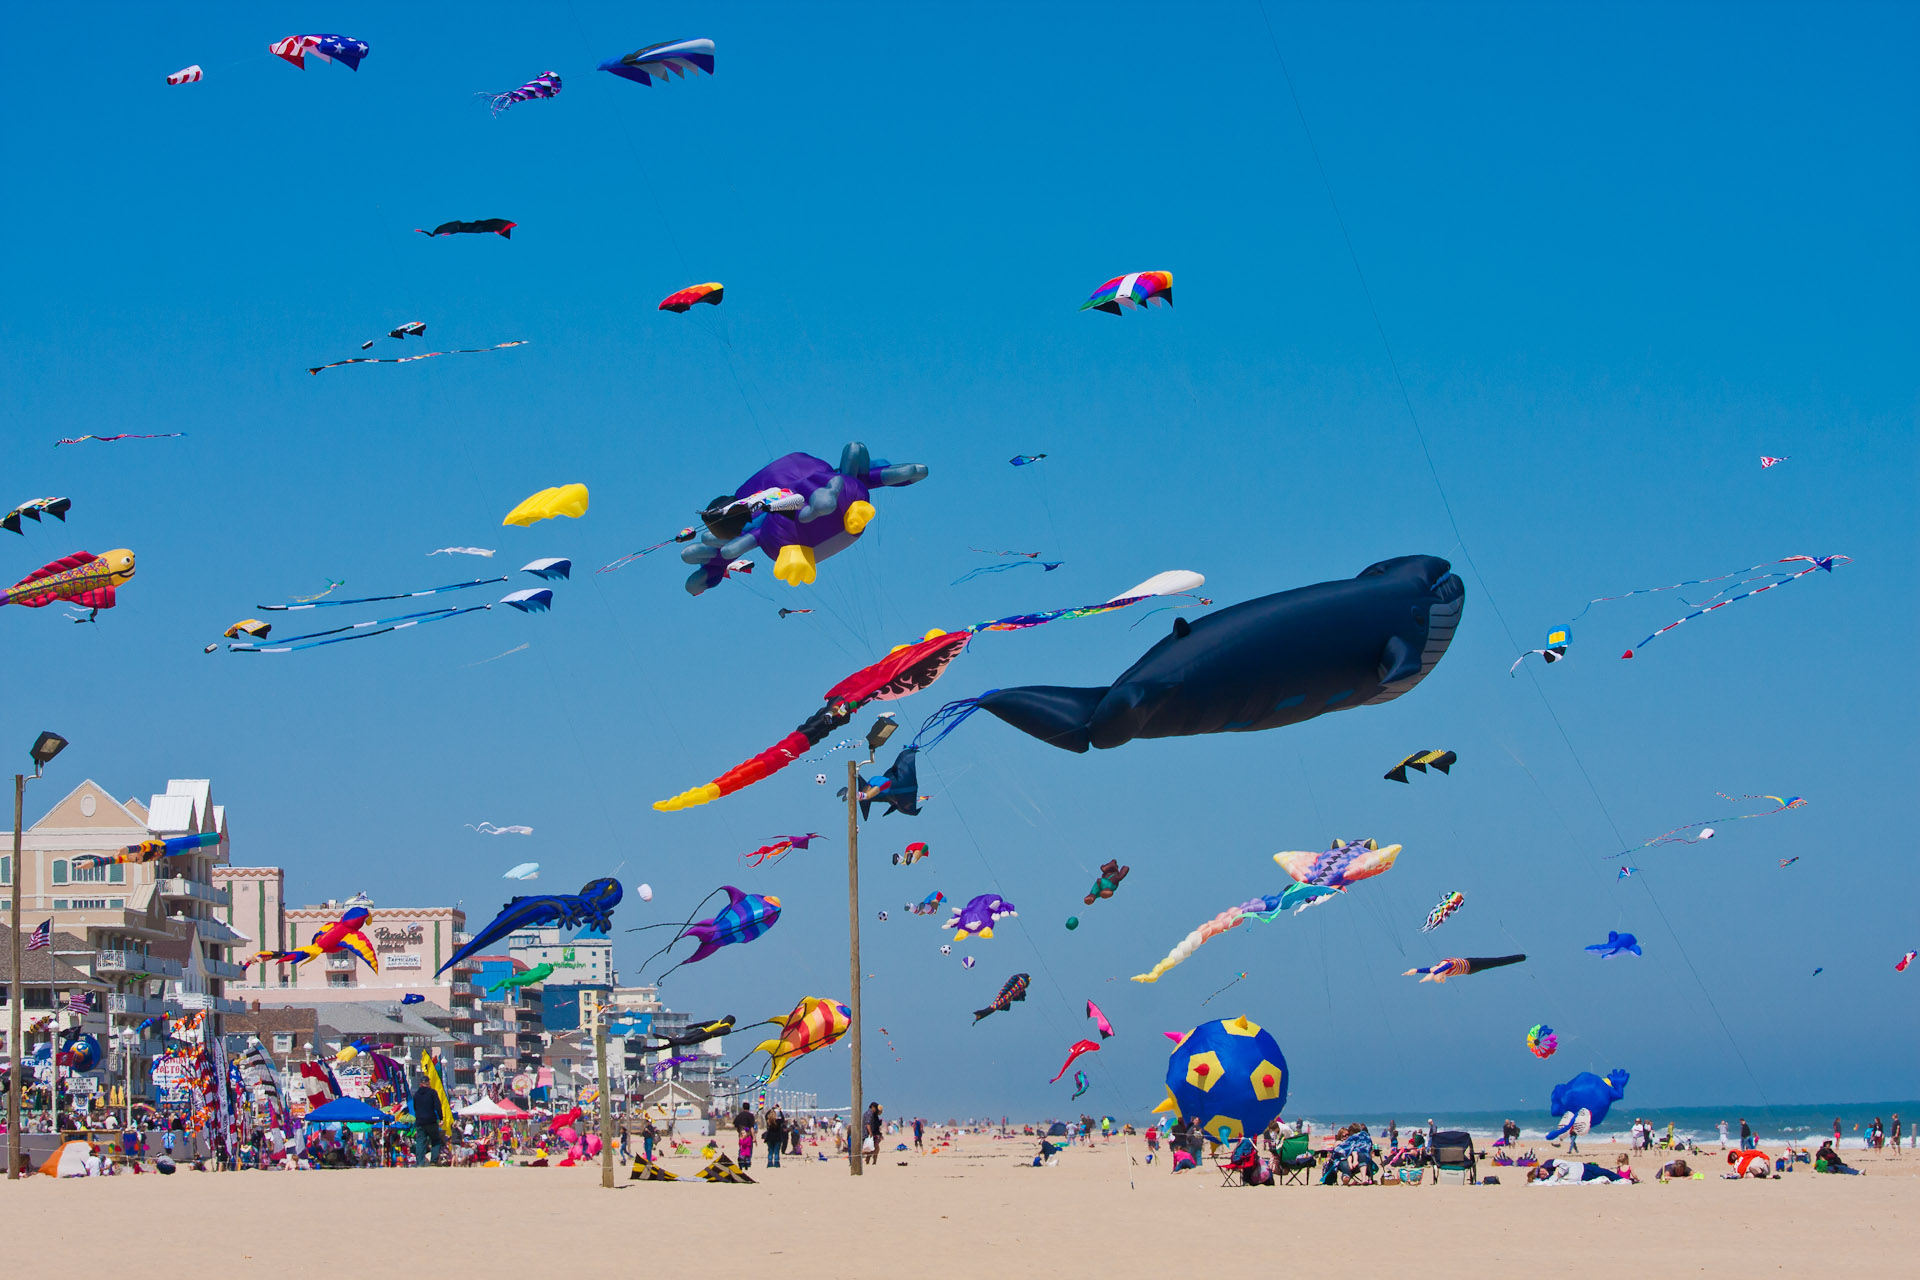 Annual Kite Expo Set For Ocean City This Weekend